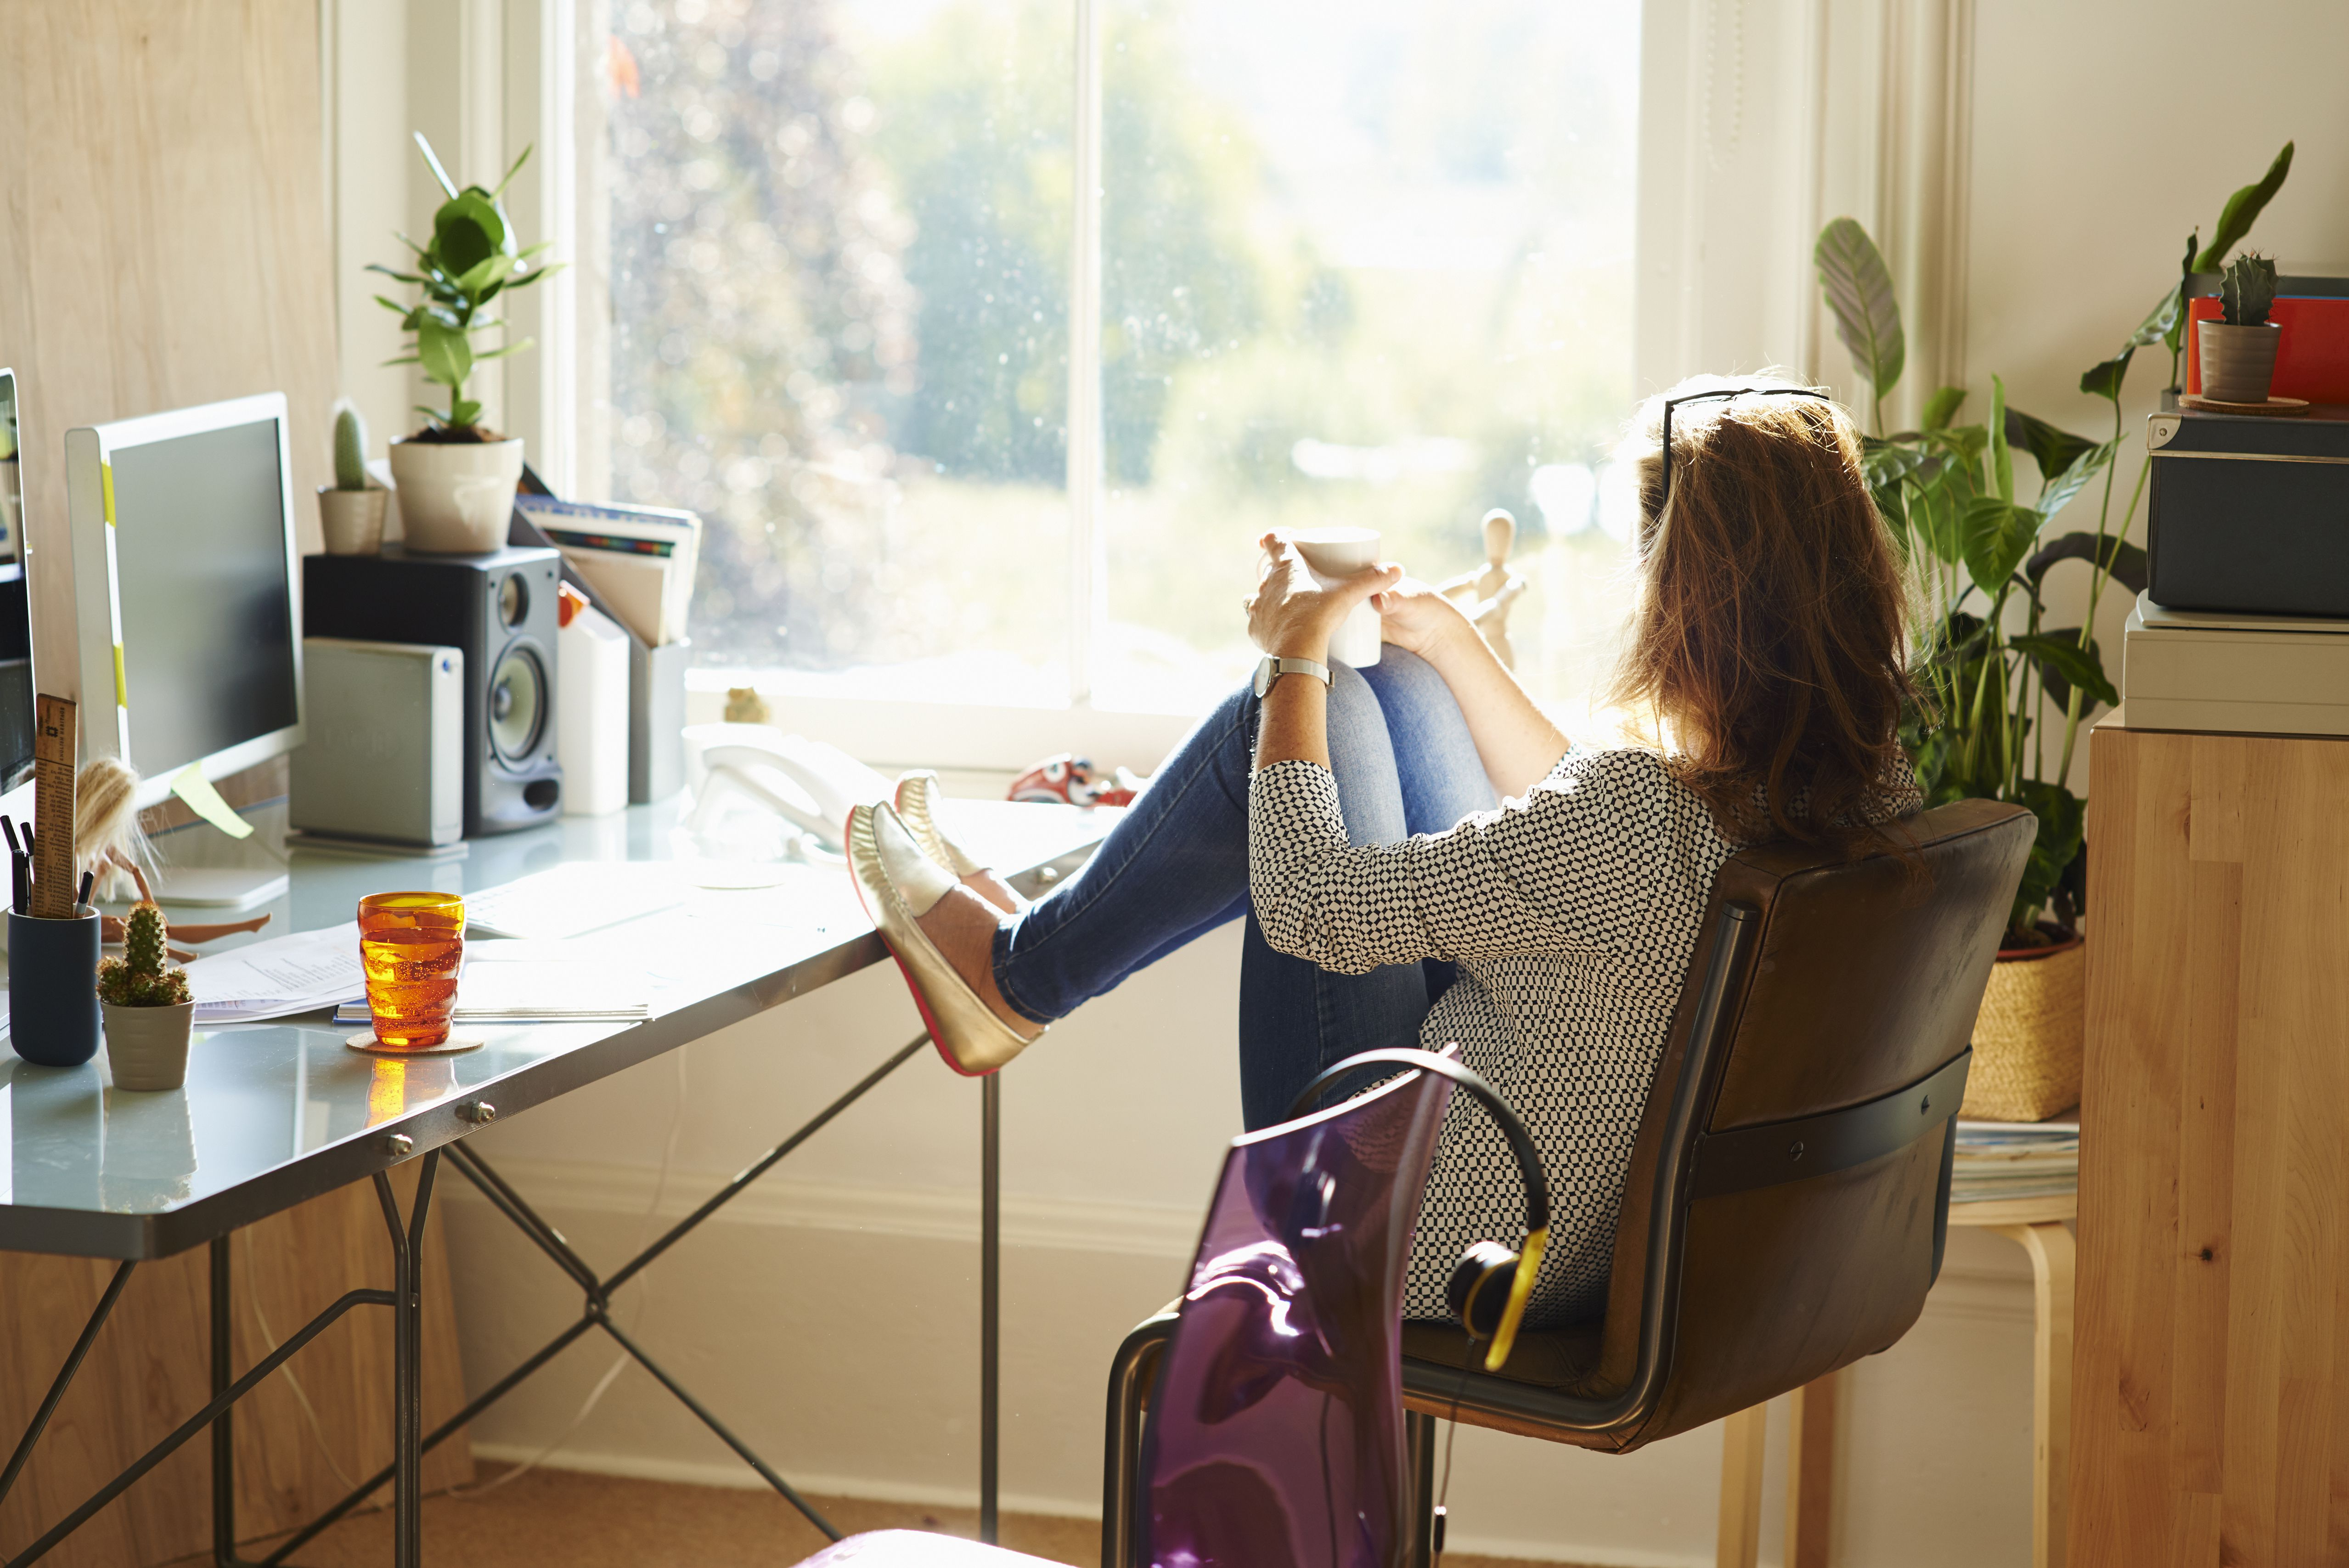 Woman taking a coffee break with her feet up on desk